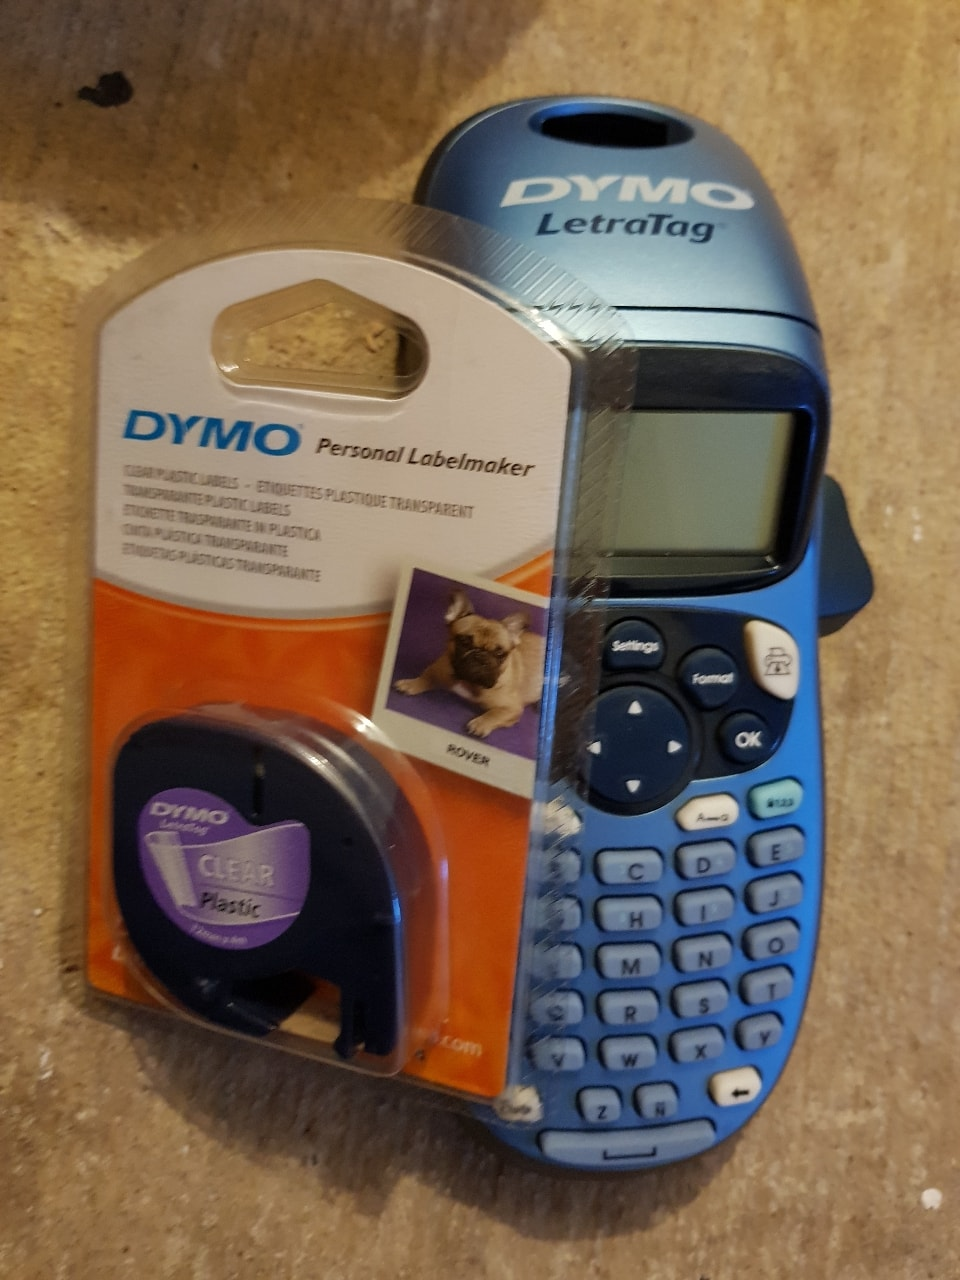 Dymo label maker with tape